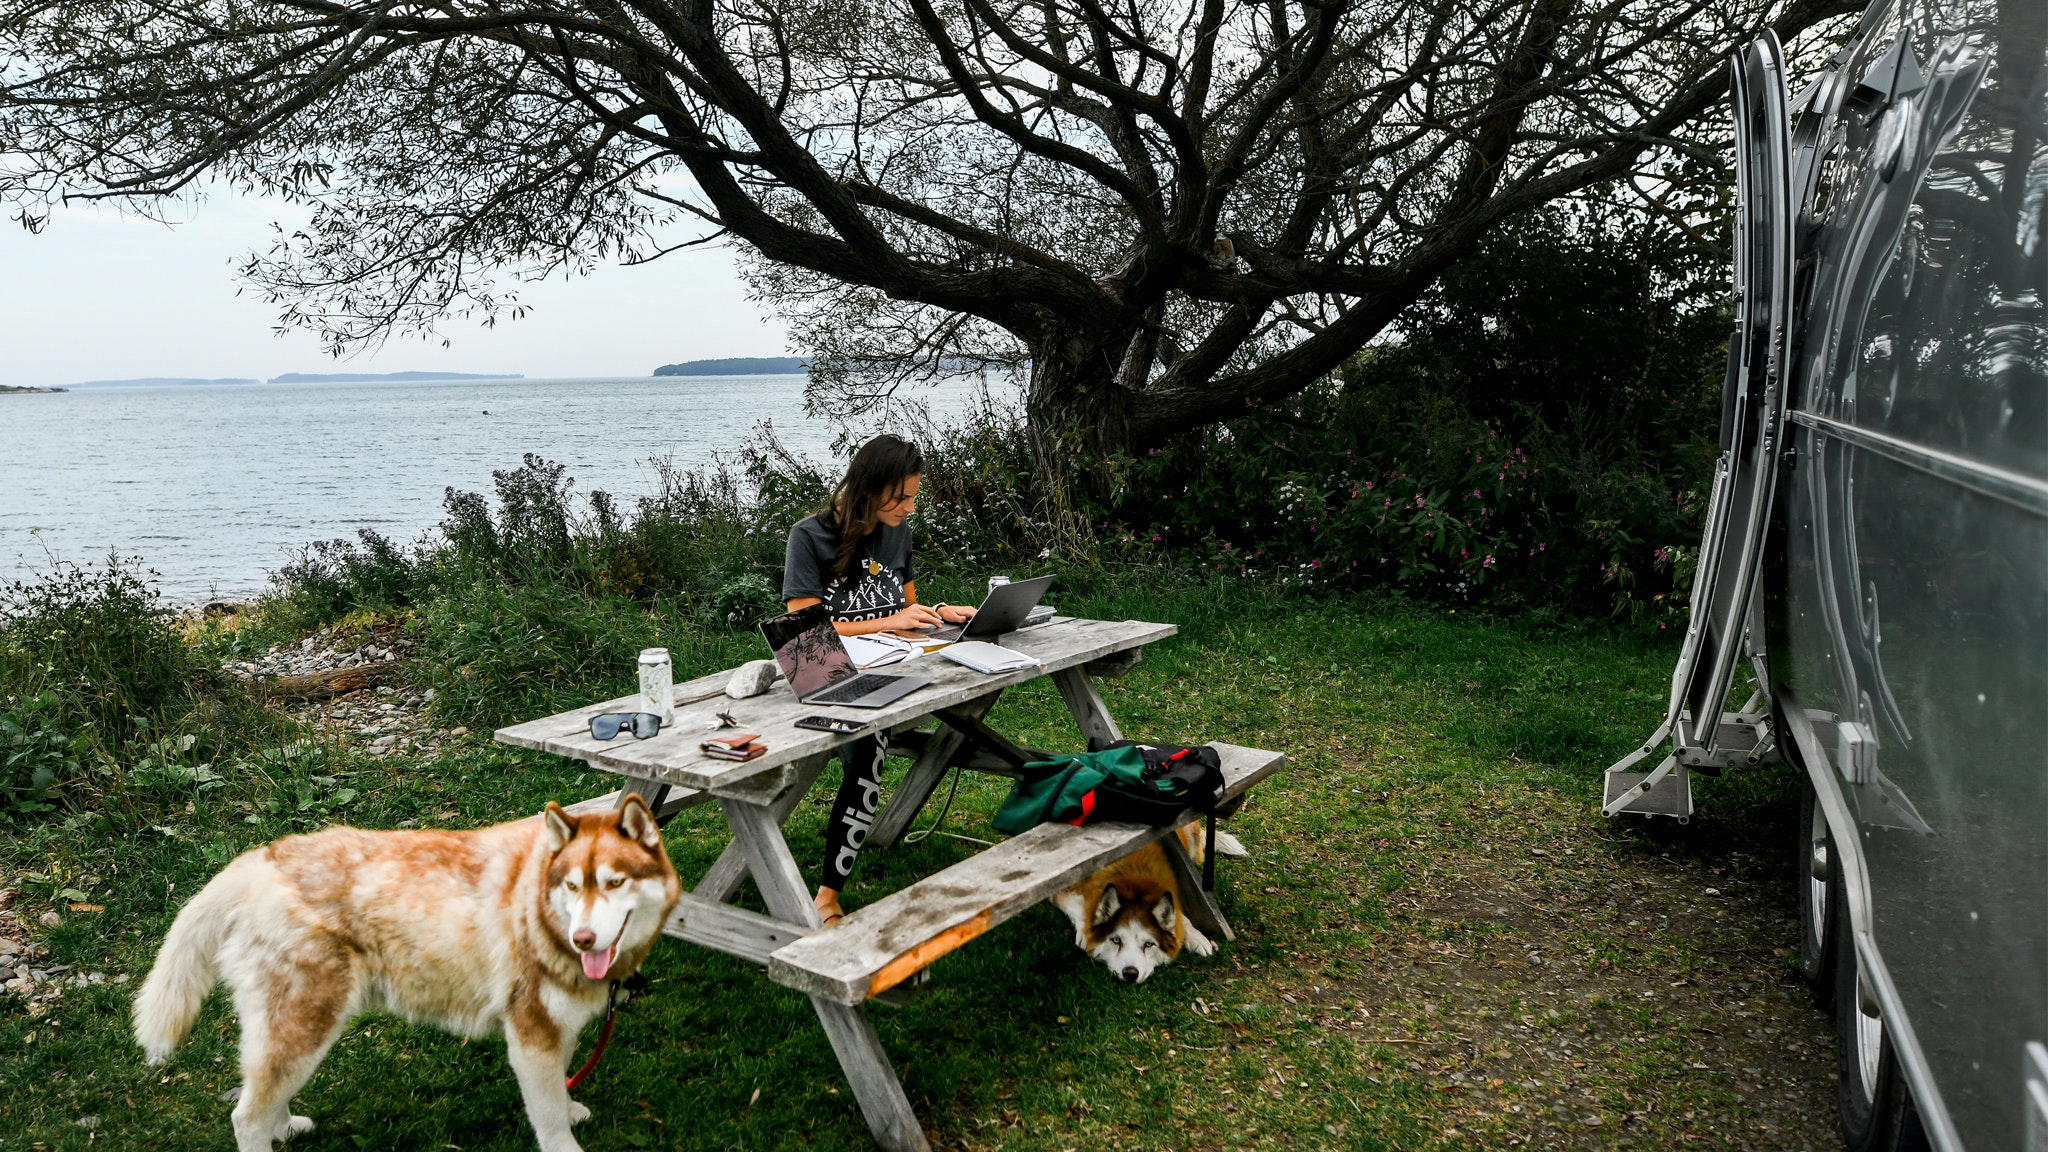 Danielle working at a picnic table outside of her Airstream Travel Trailer